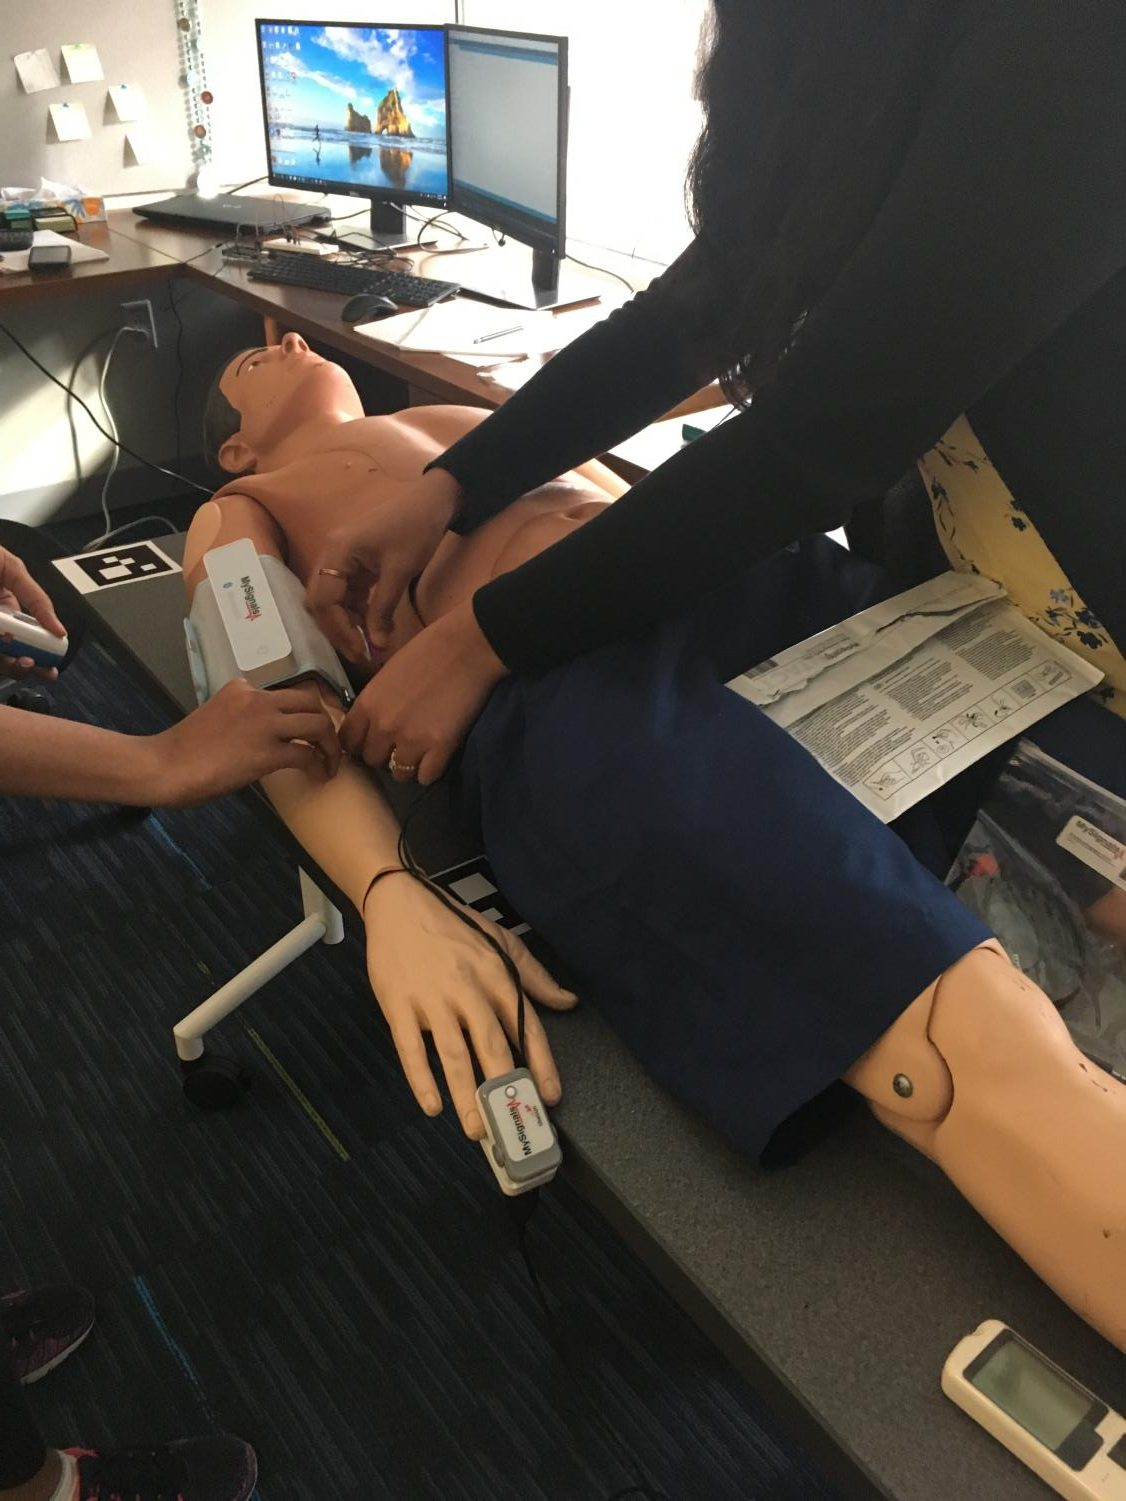 Lab engineers in the Health Care Engineering Systems Center demonstrate sensors that measure patients' vitals (blood sugar, heart rate, etc) and connect ongoing data to an iCloud system that can be shared with the patients' doctor on a dummy/mannequin.